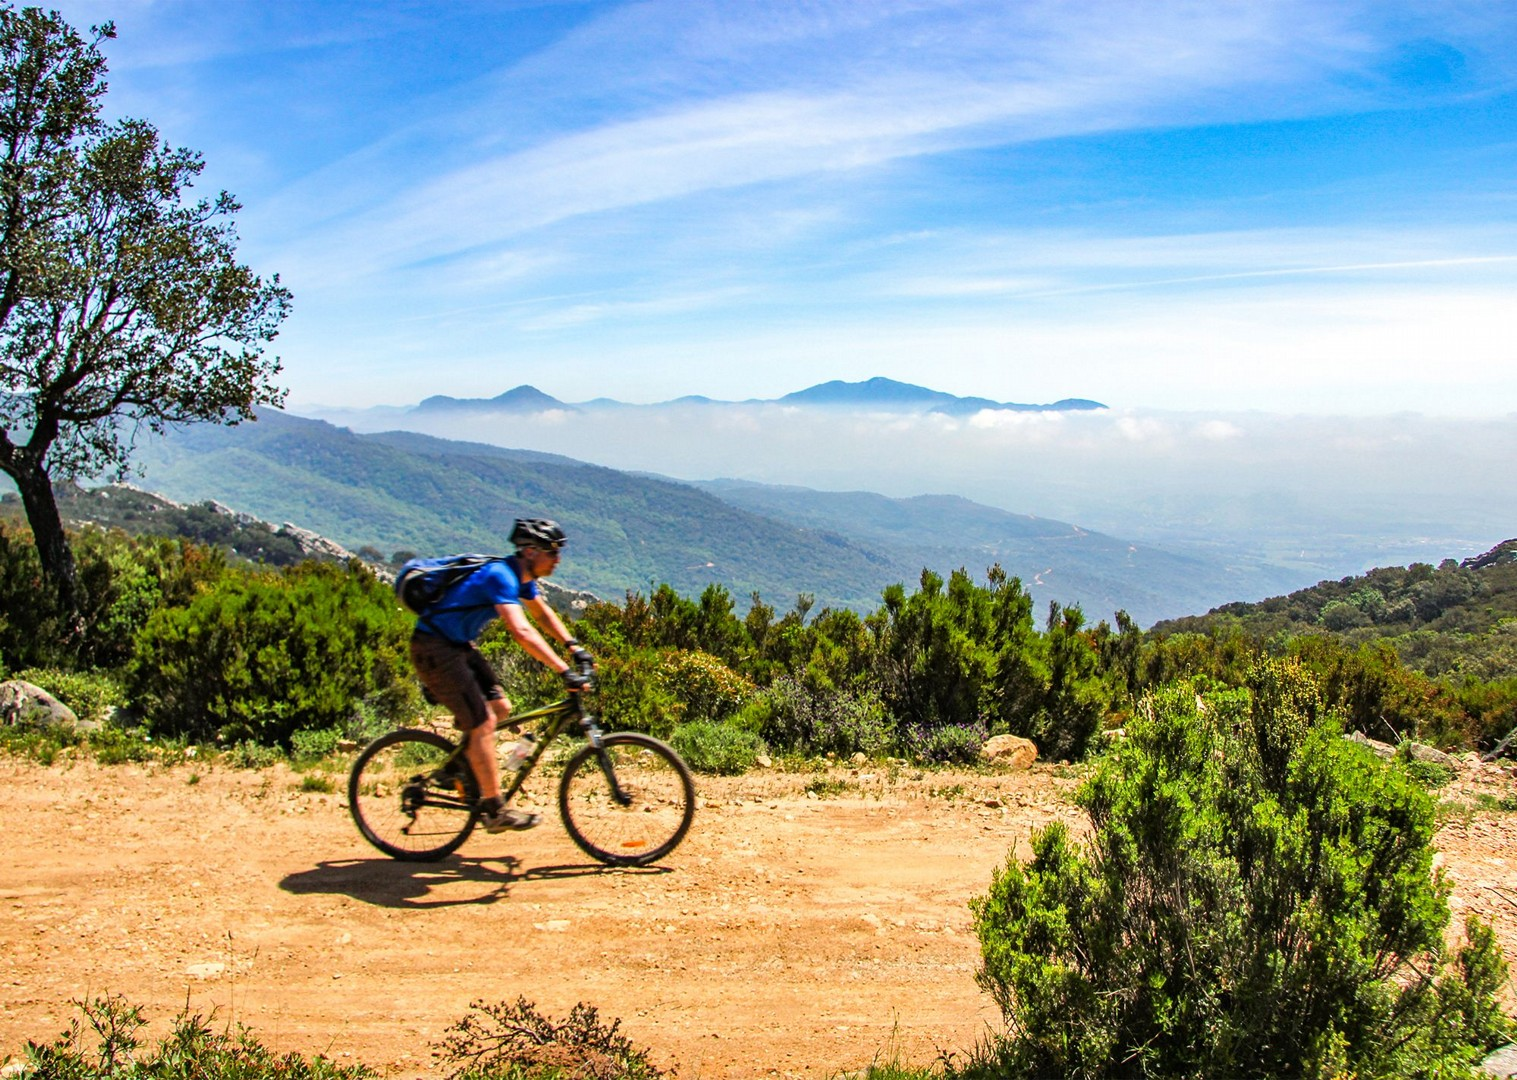 saddle-skedaddle-mountain-bike-holiday-trans-andaluz-spain.jpg - Spain - Trans Andaluz - Guided Mountain Bike Holiday - Mountain Biking